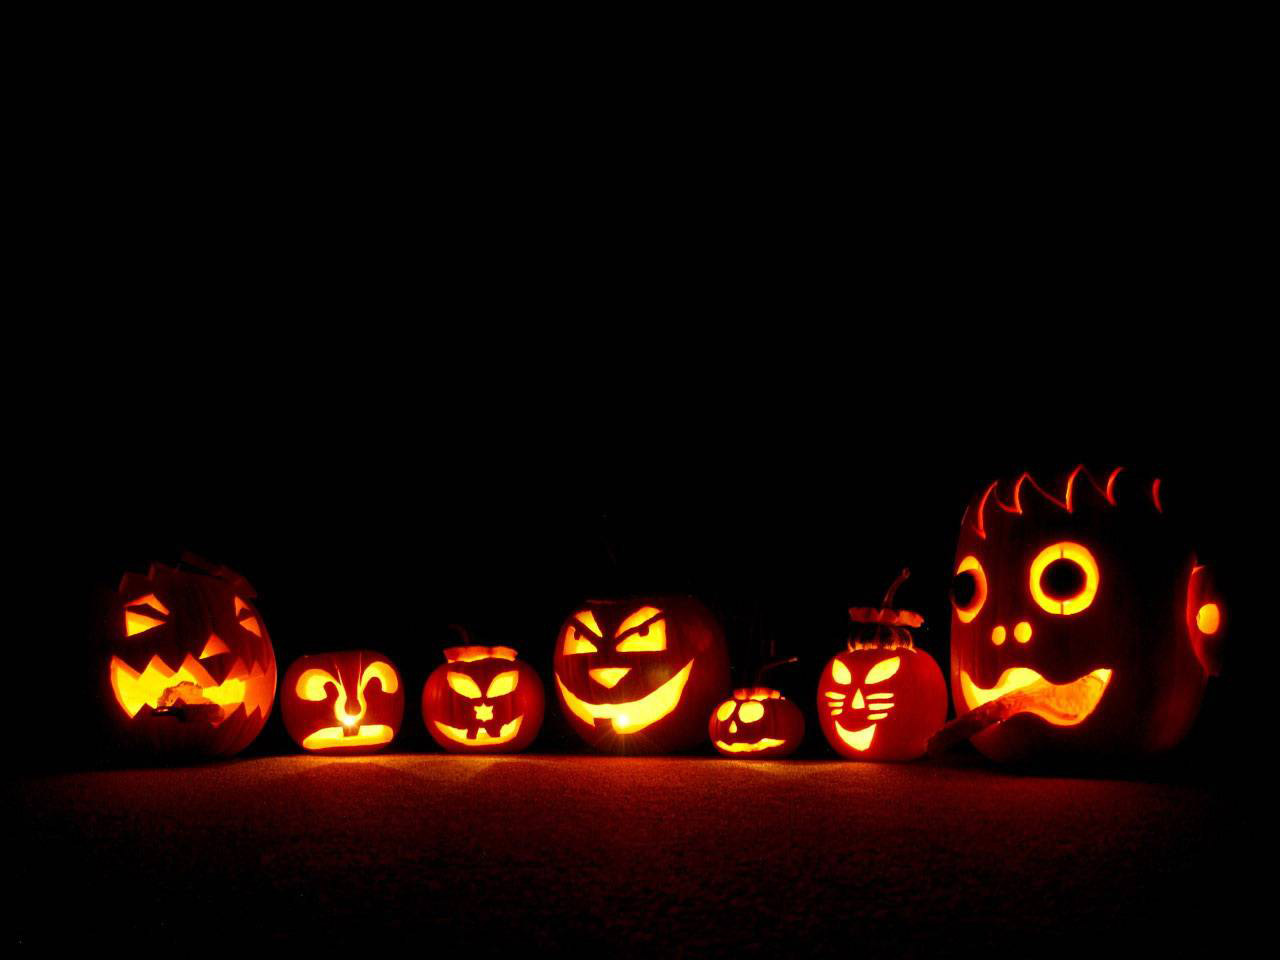 to download wallpapers just right click on pictures and select - Halloween Pics Free